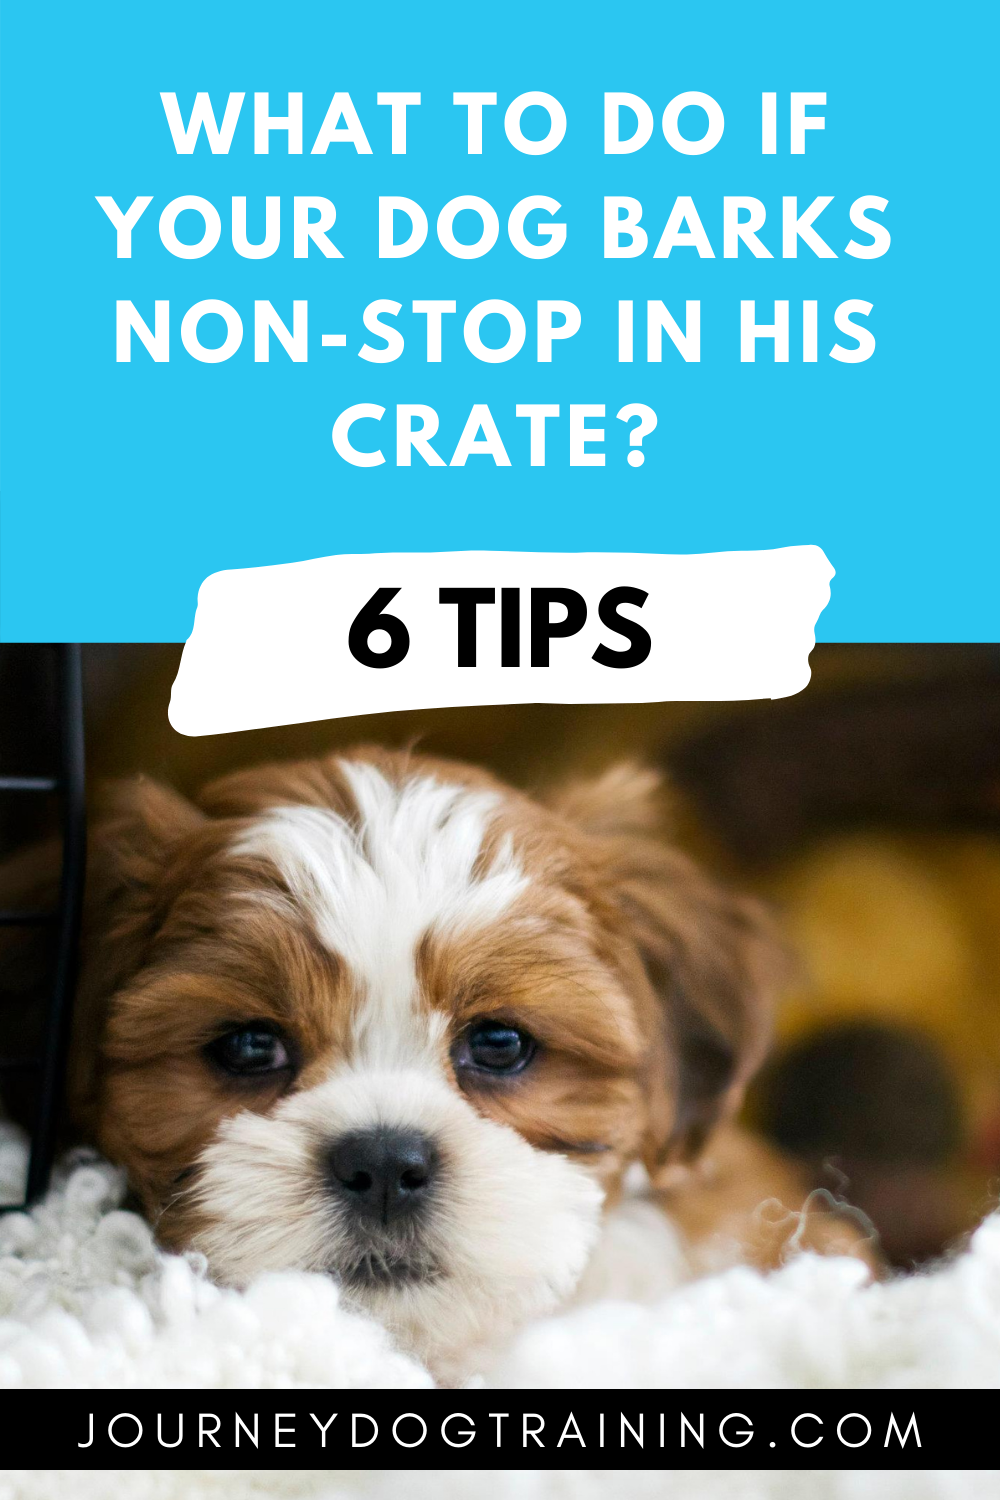 What to do if your dog barks non-stop in his crate? Click through to learn my 6 tips to train your dog how to relax and stop barking in his kennel. #cratetraining #dogtraining journeydogtraining.com